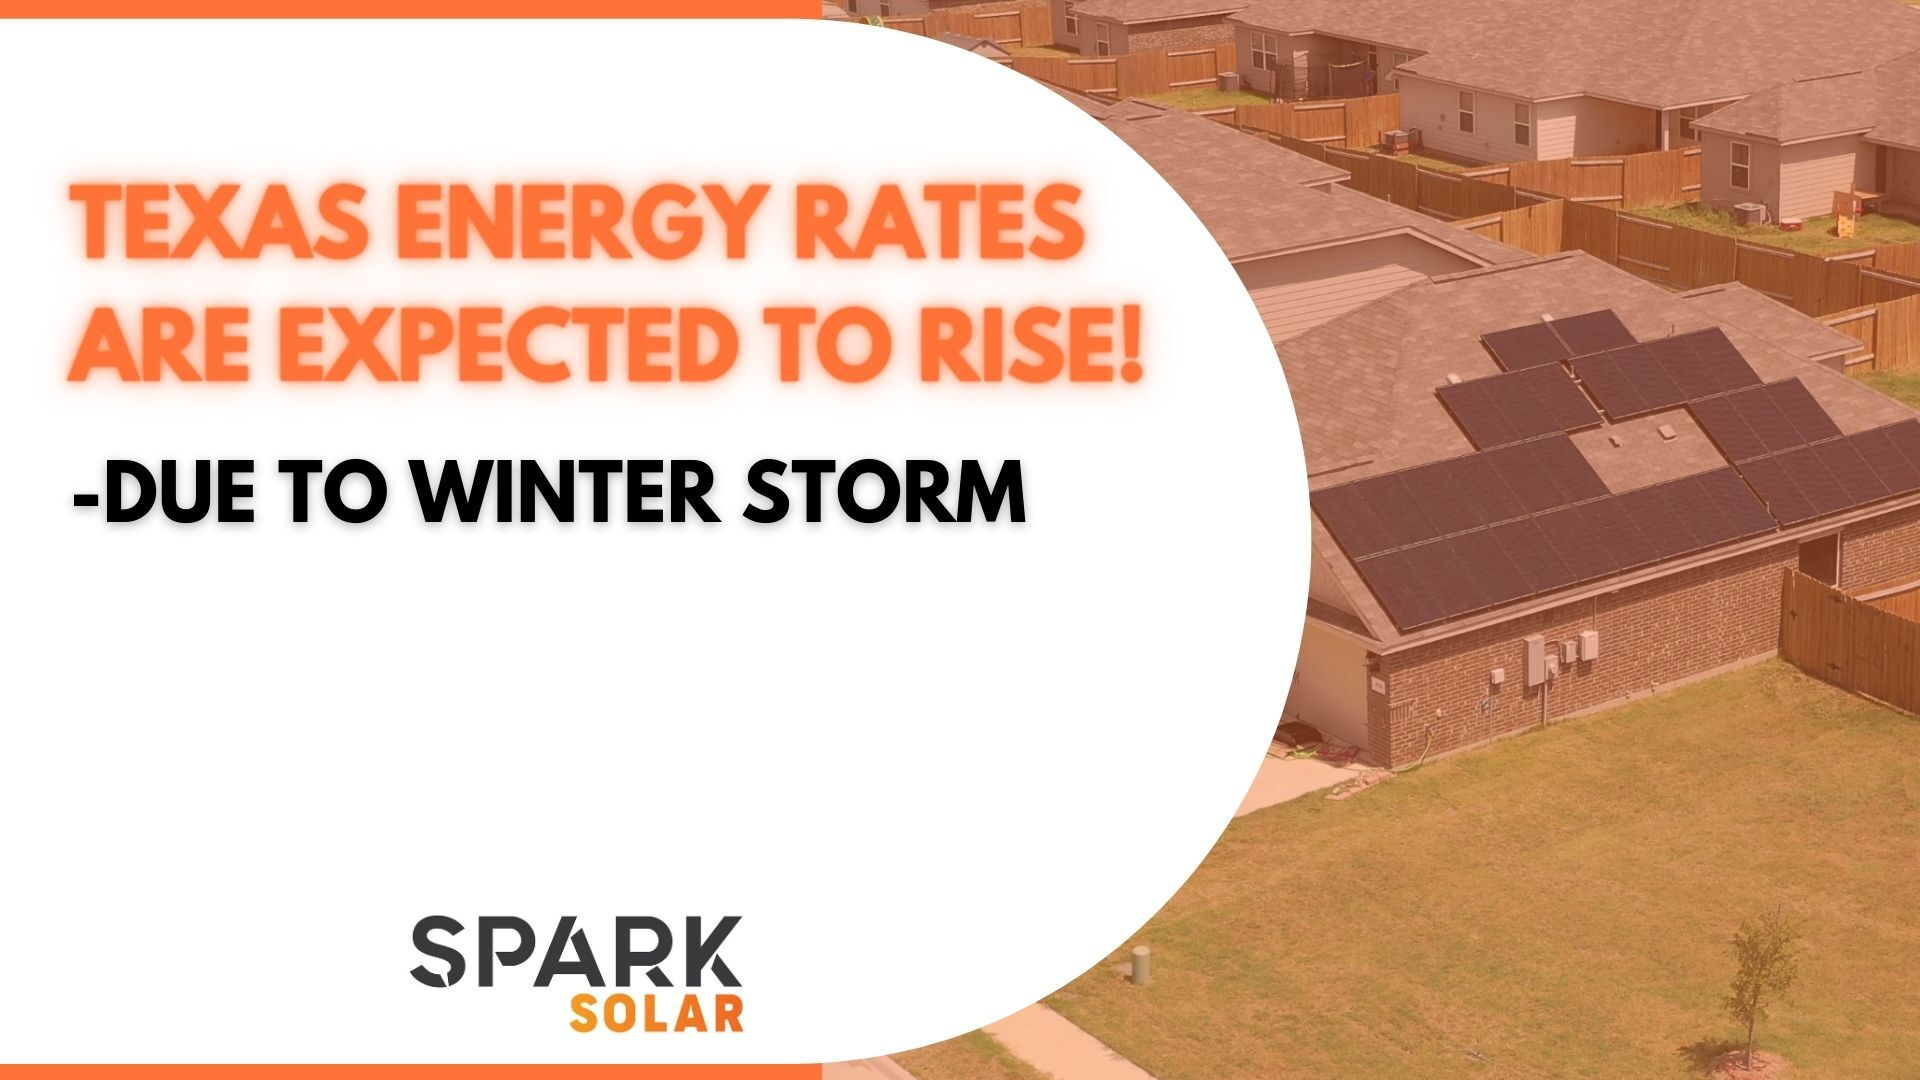 Texas Energy Rates To Rise Due To Winter Storms 2021